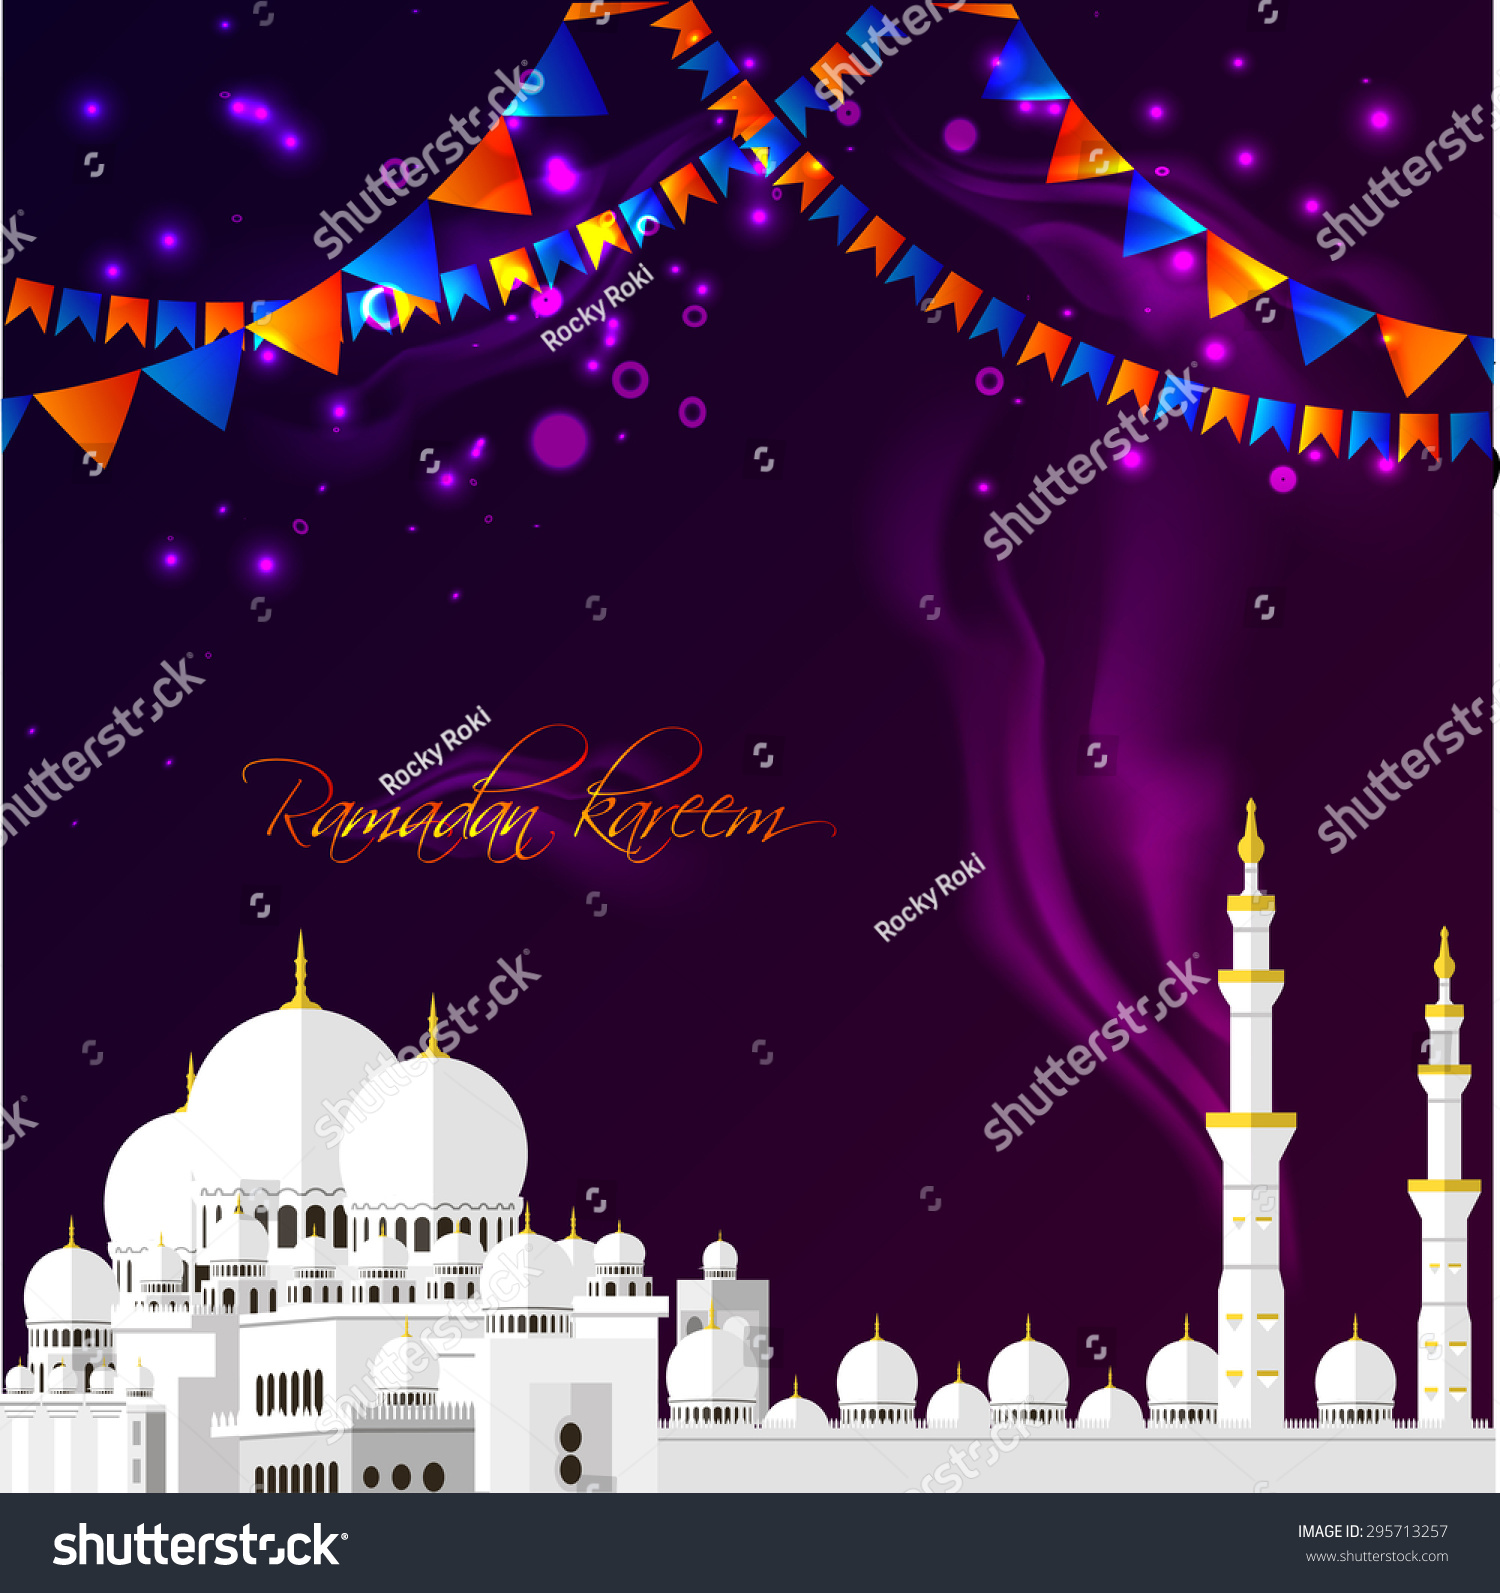 Ramadan kareem greeting cards muslim background stock vector ramadan kareem greeting cards muslim background mosque with ribbons and stars vector illustration m4hsunfo